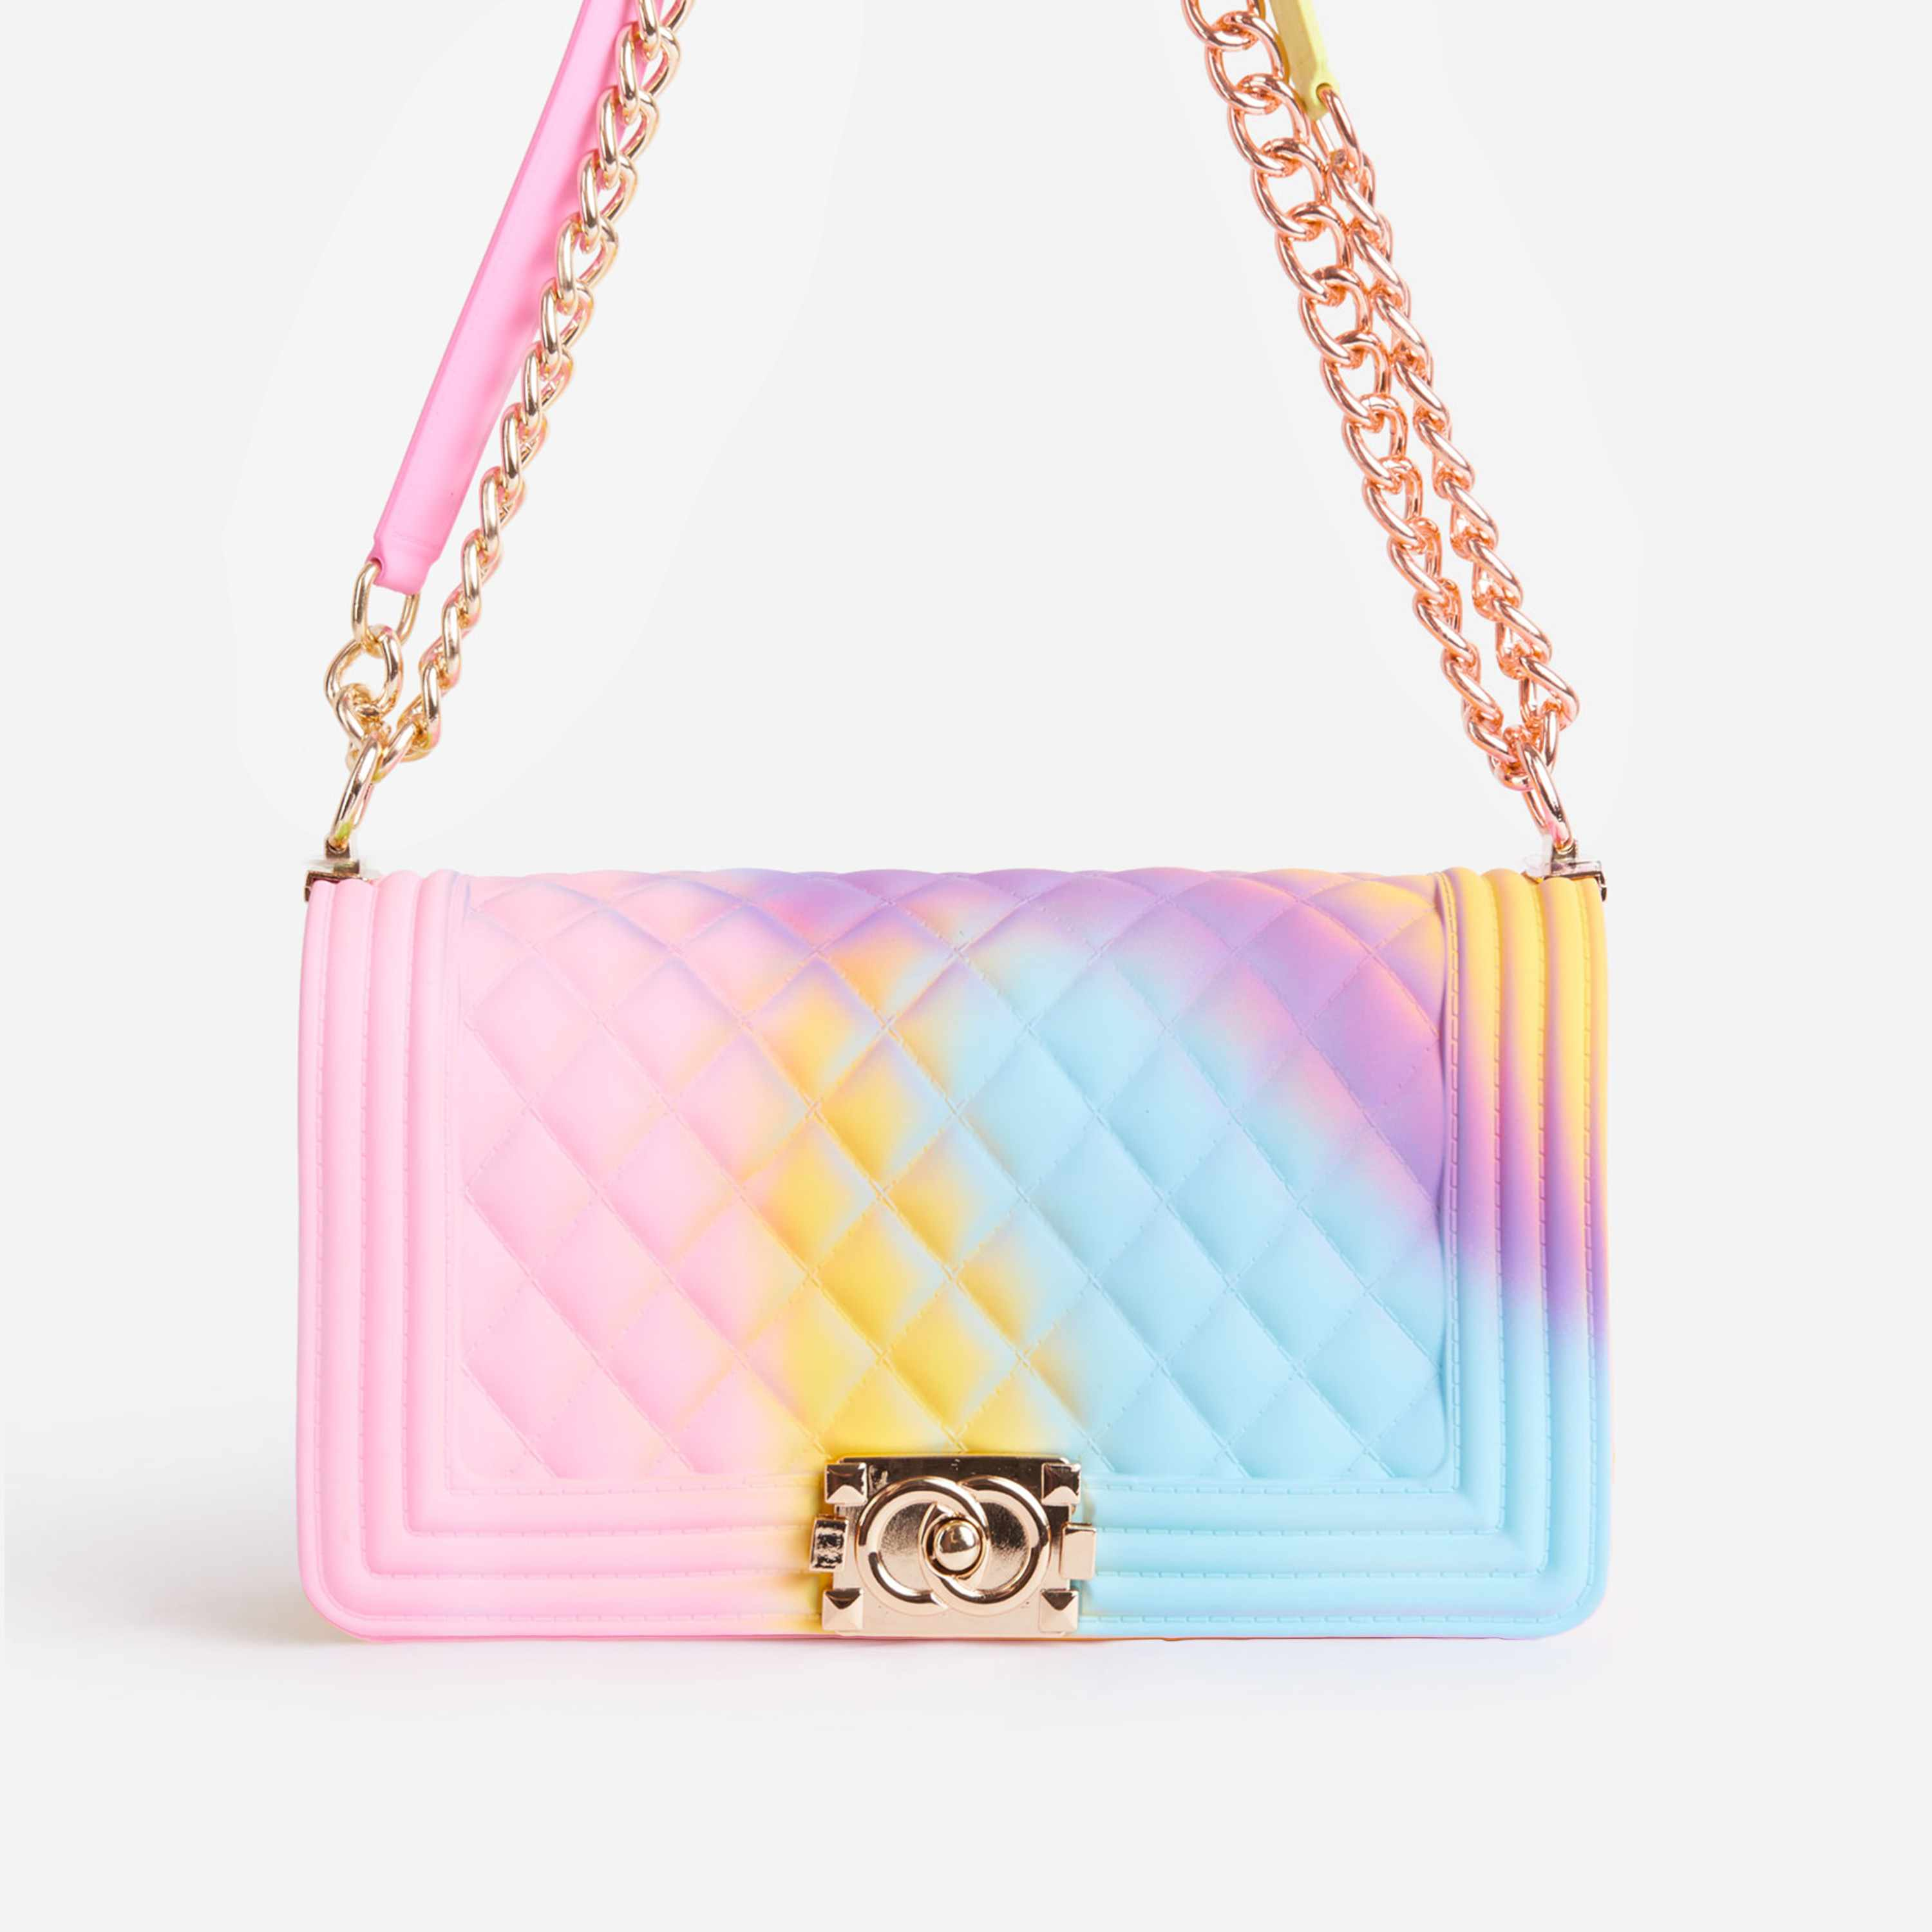 Jules Quilted Tie Dye Chain Shoulder Bag in Pink Faux Leather